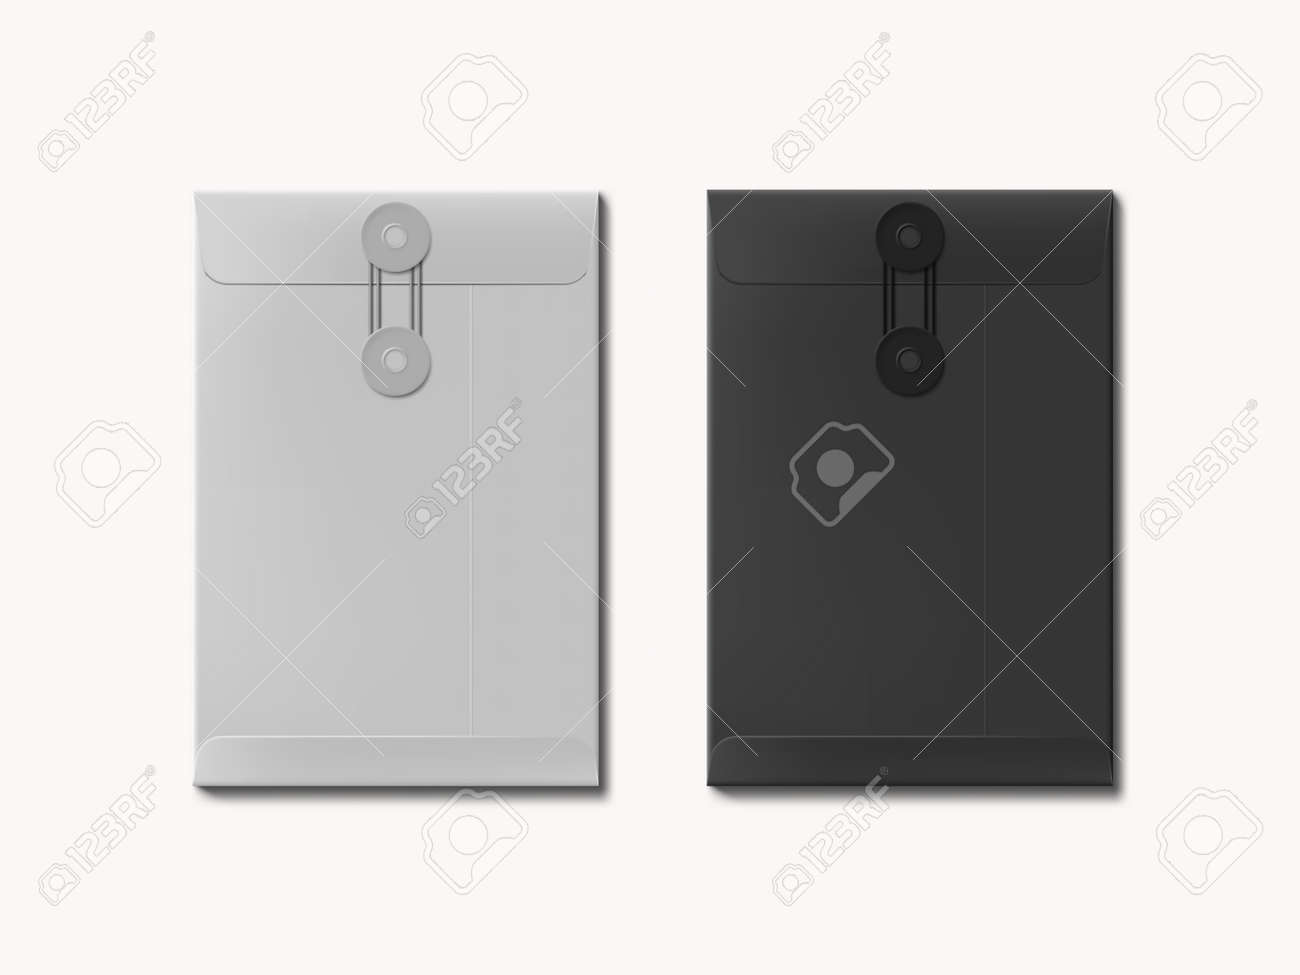 Black And White Paper A4 Or C4 Size Envelope - 169410478